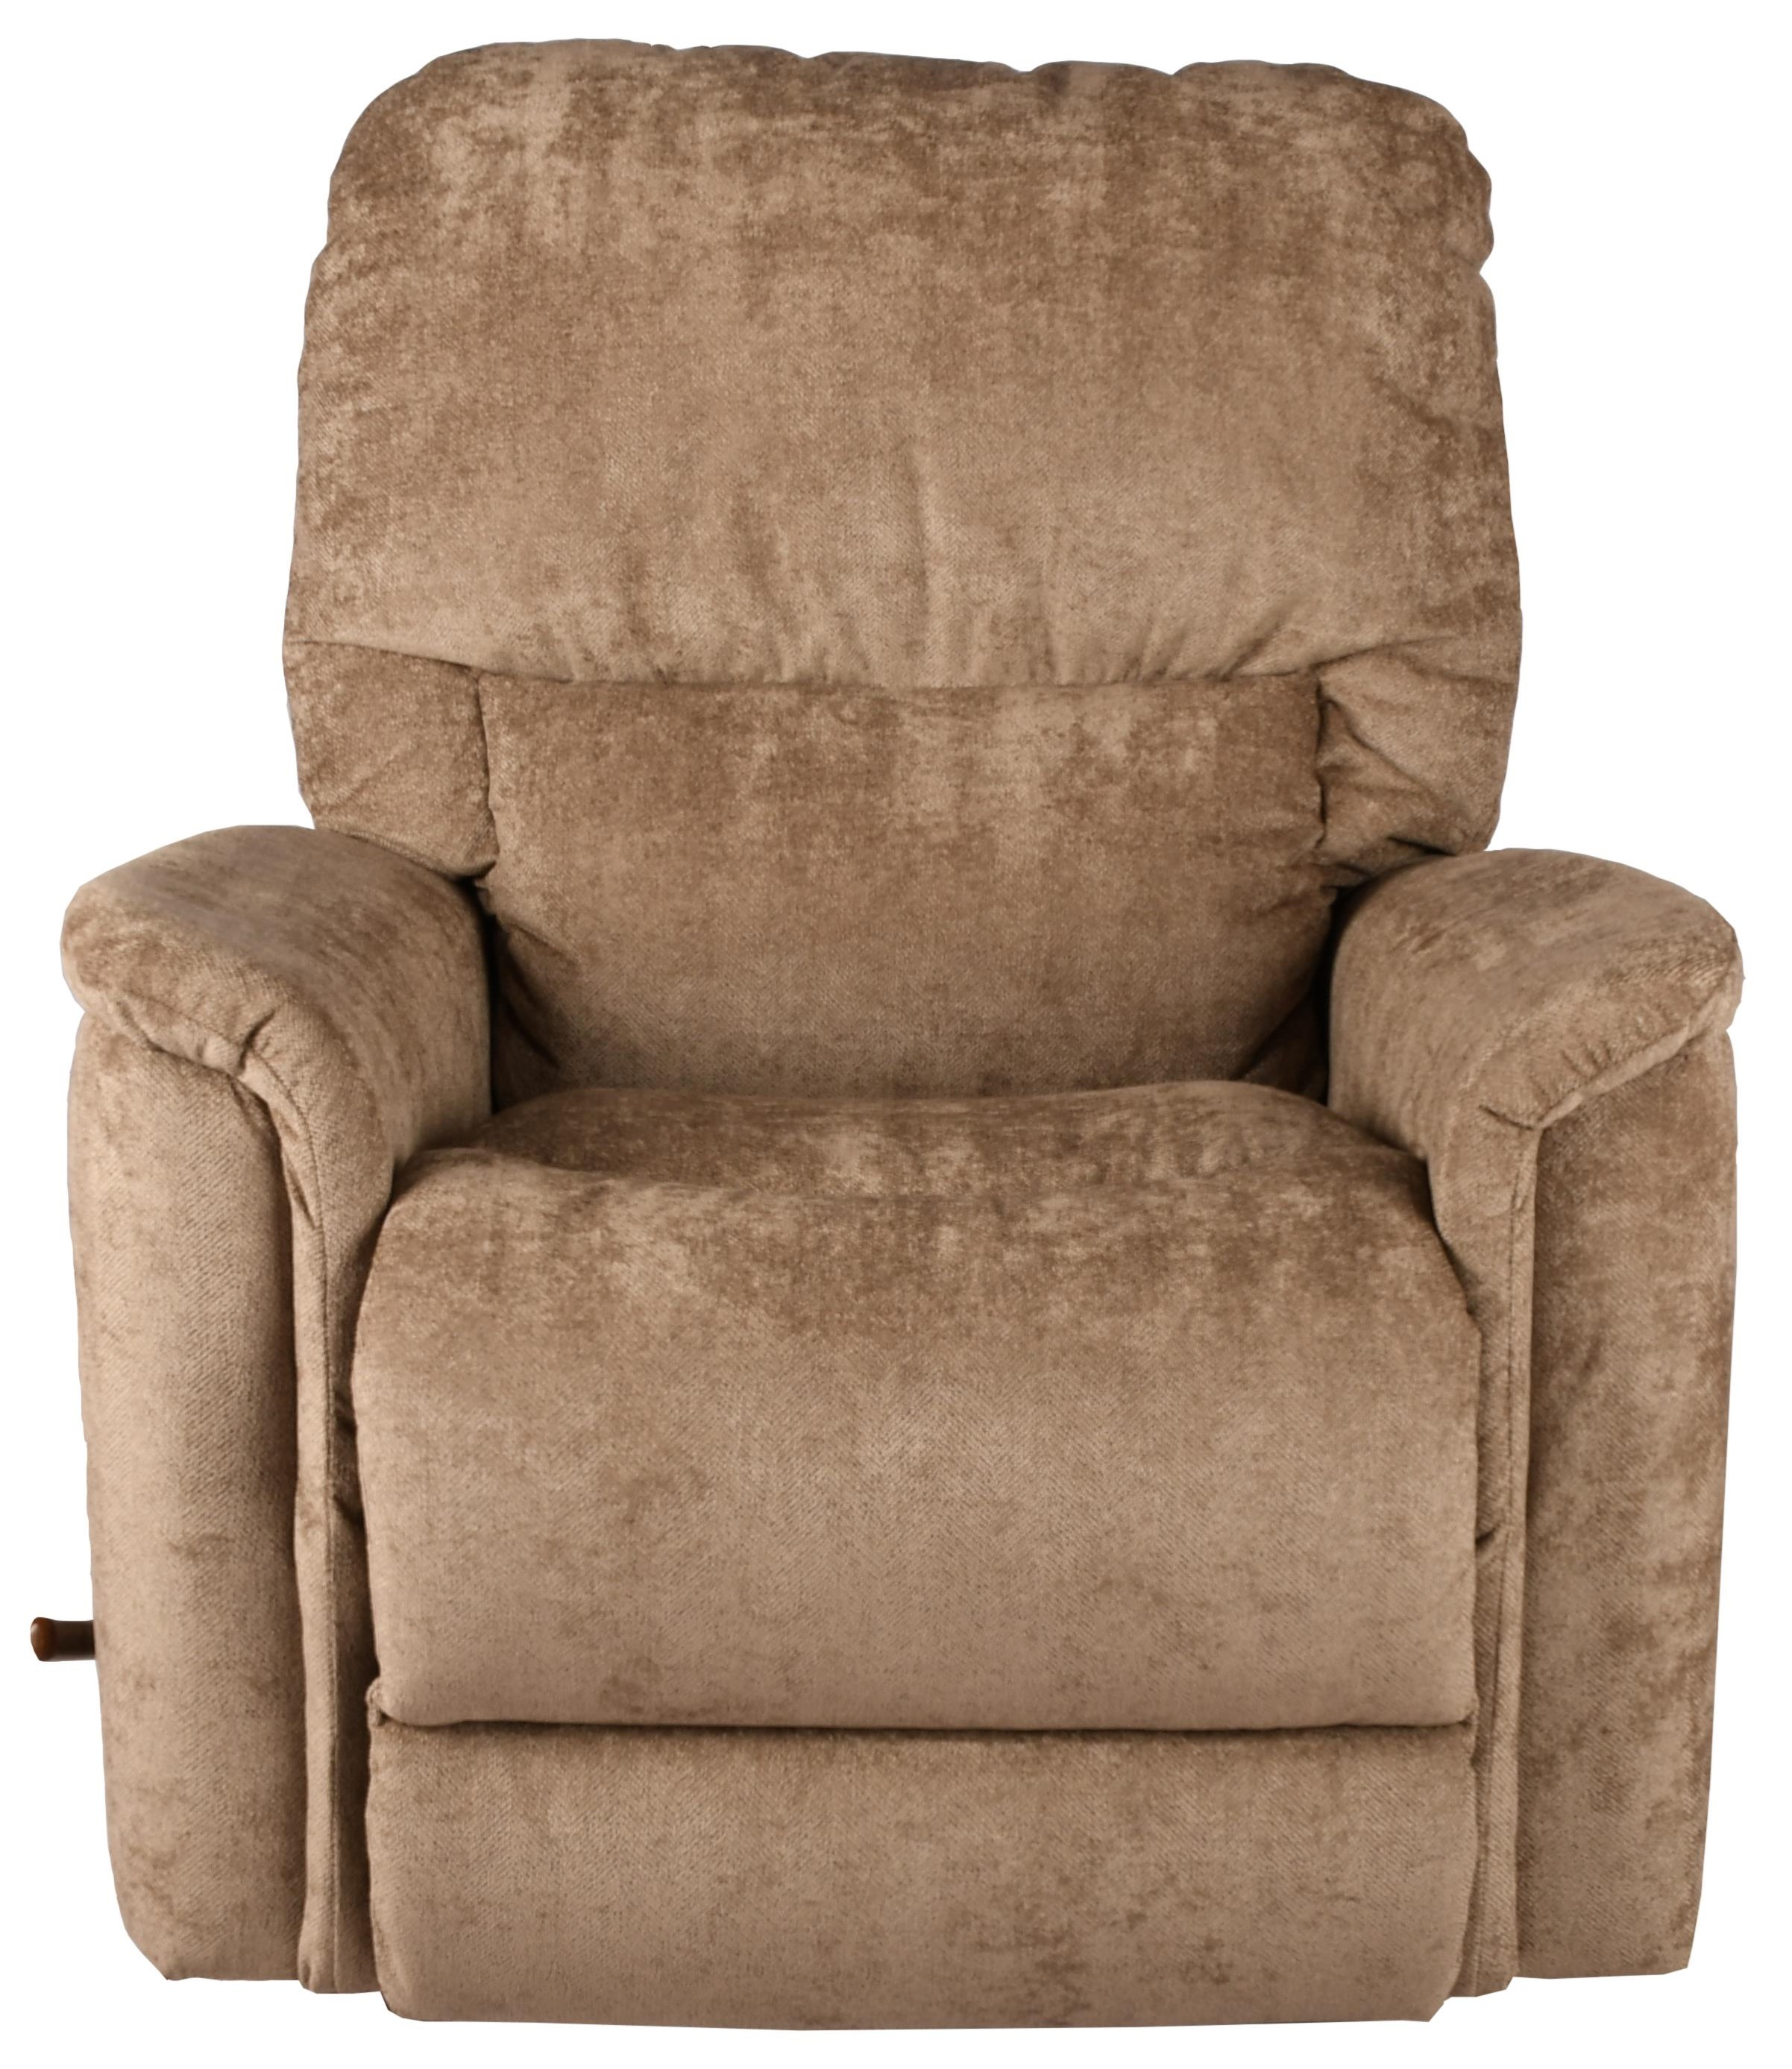 Turner Wall Recliner by La-Z-Boy at Bennett's Furniture and Mattresses